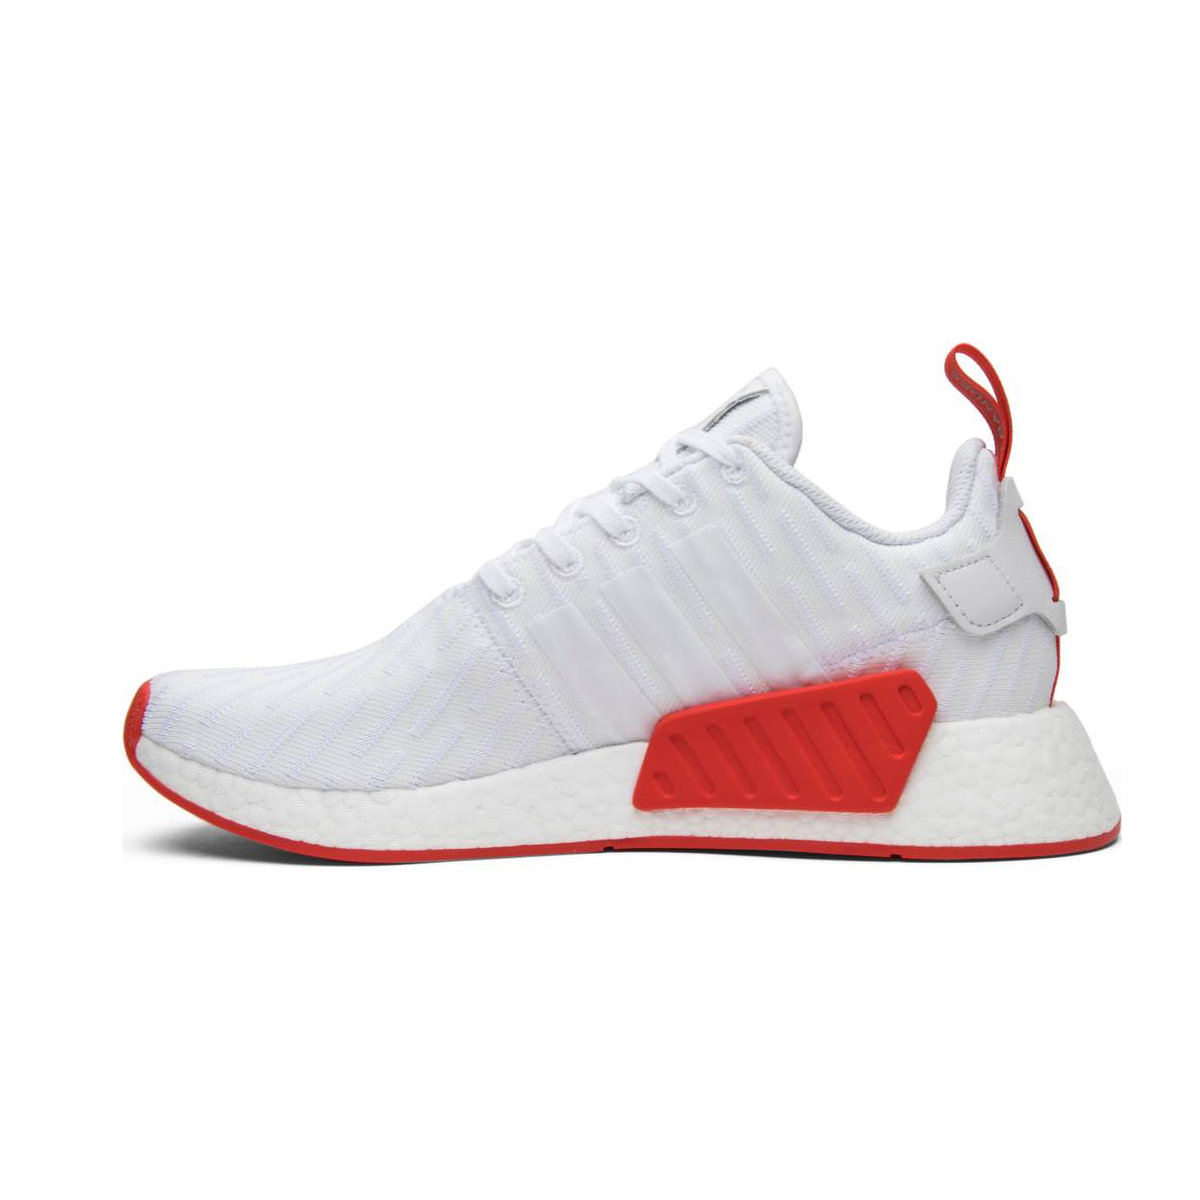 adidas NMD R2 White Core Red Two Toned